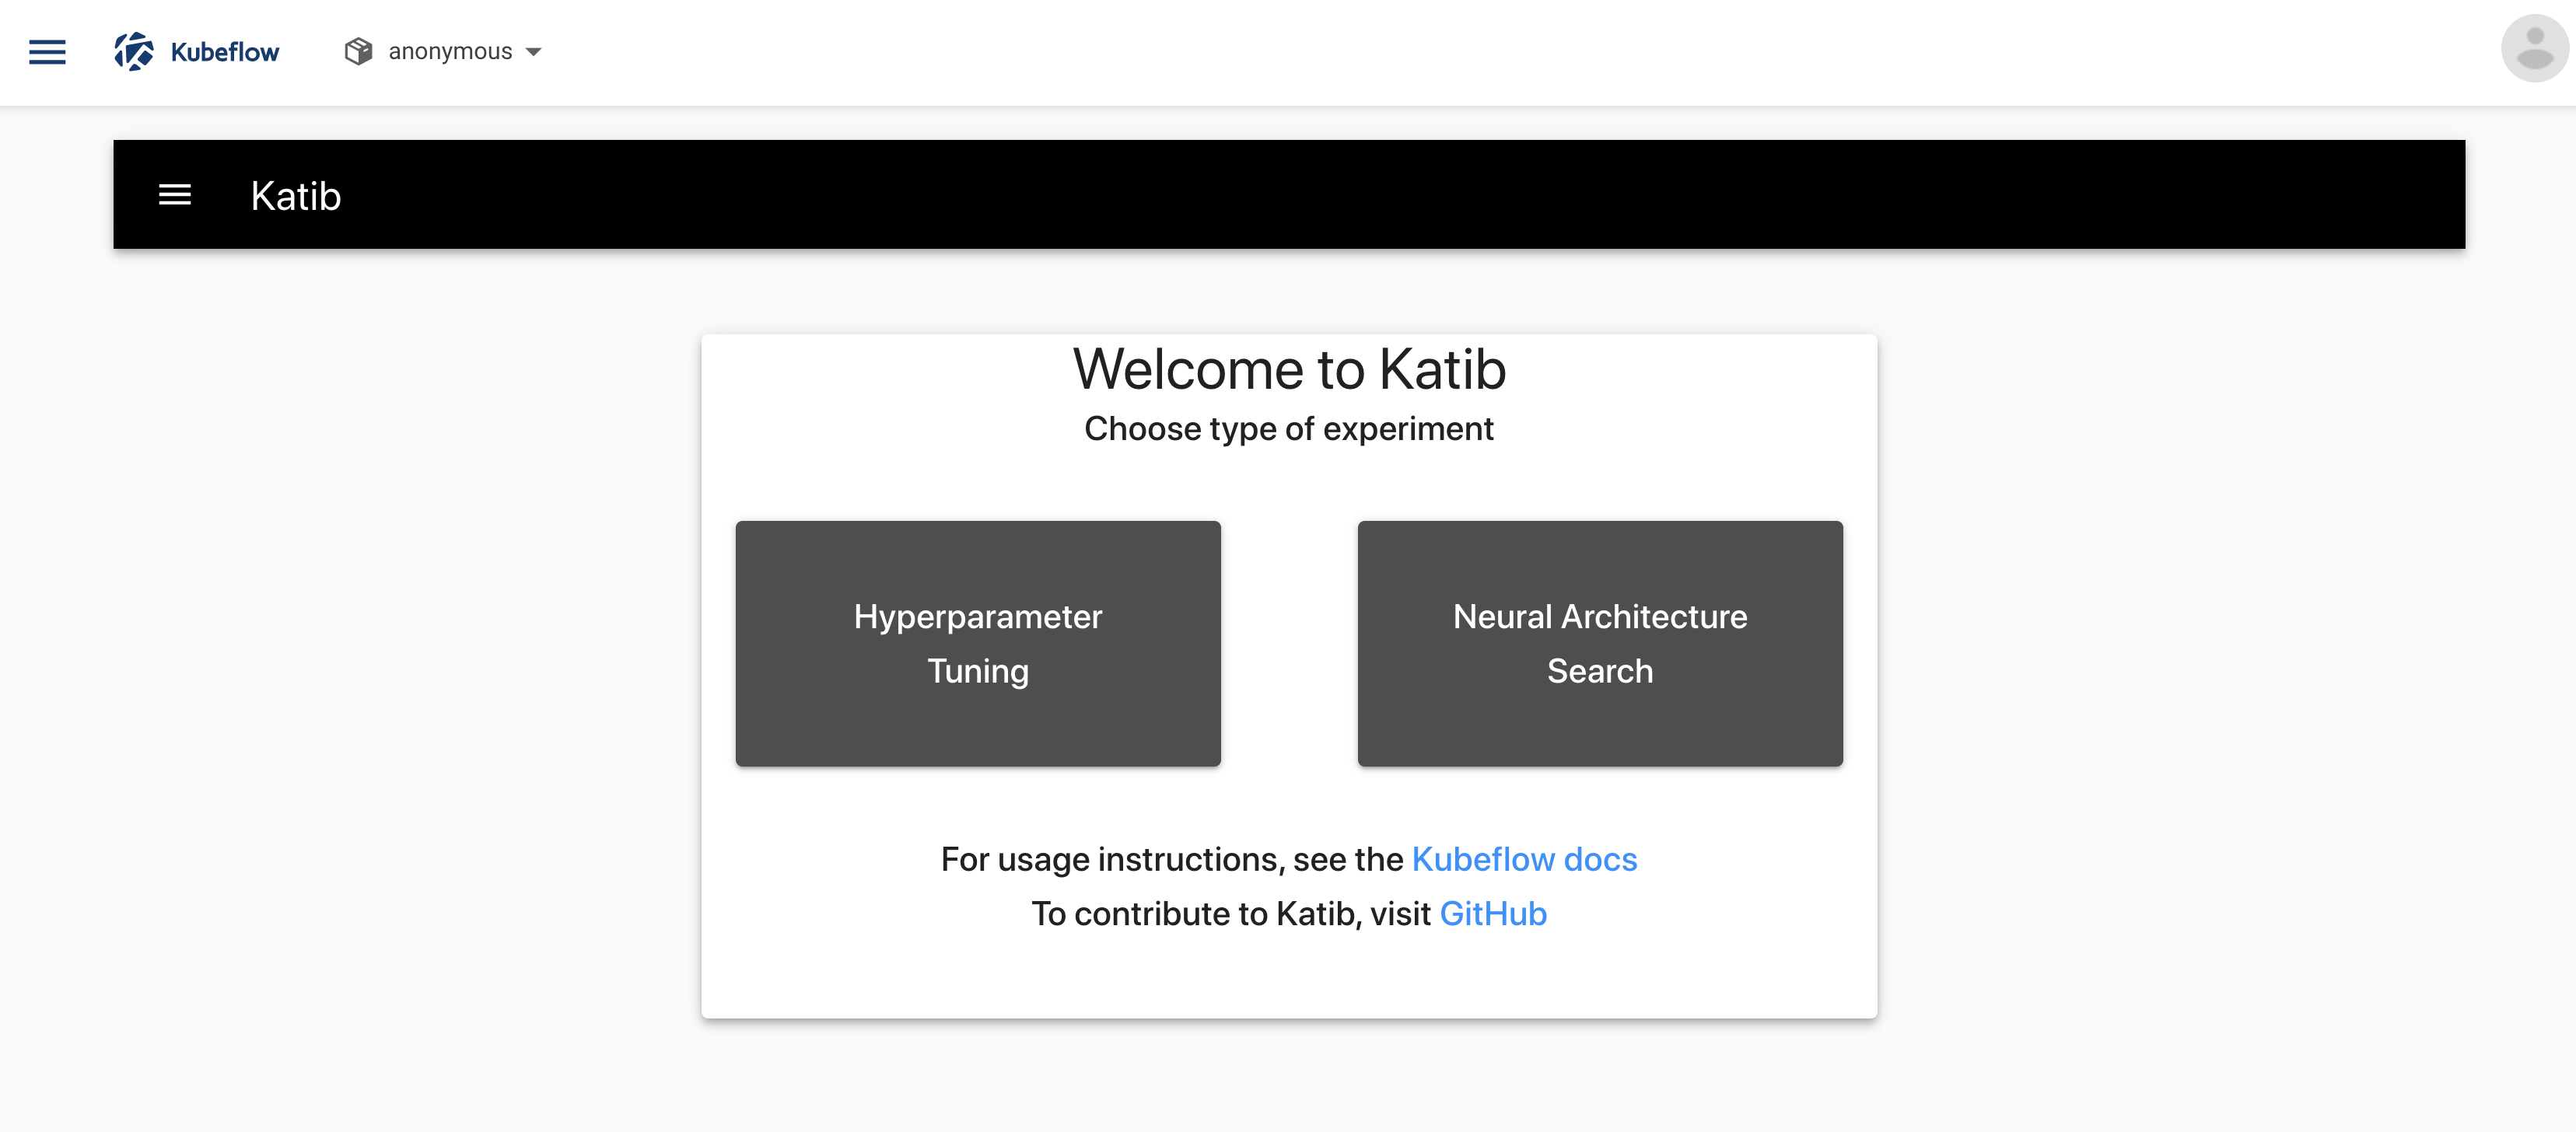 The Katib home page within the Kubeflow UI